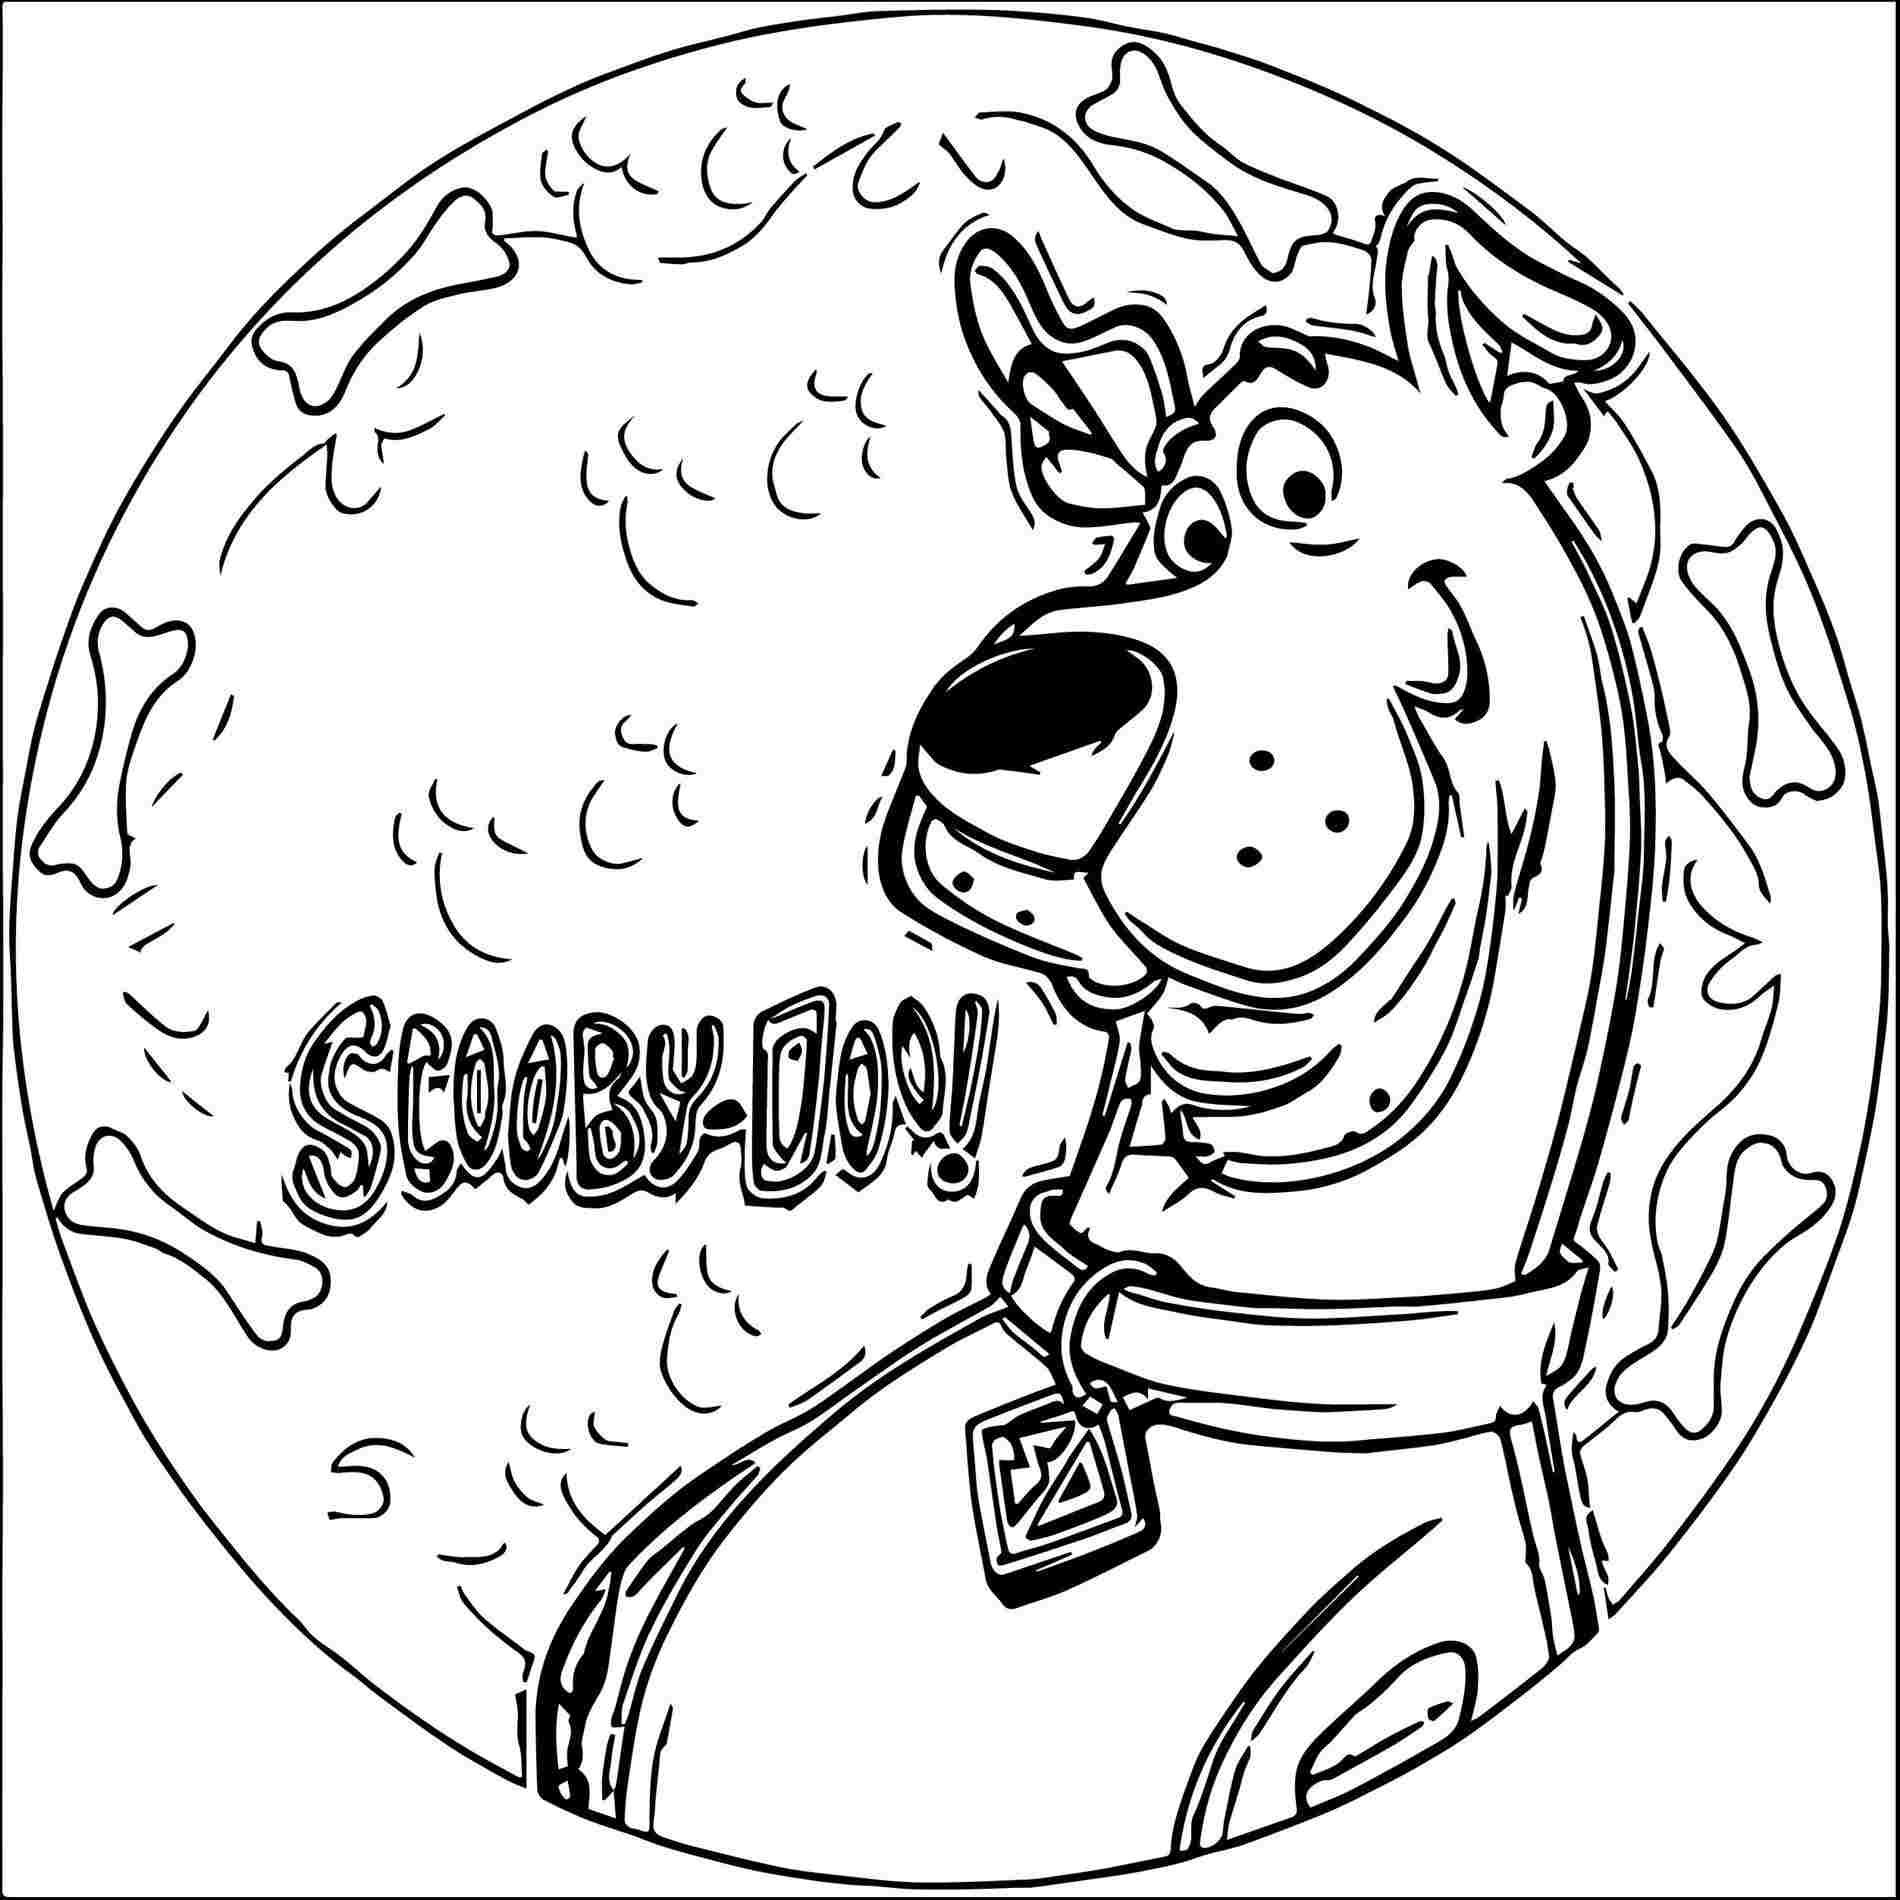 scooby doo smiling scooby doo face drawing at paintingvalleycom explore scooby smiling doo